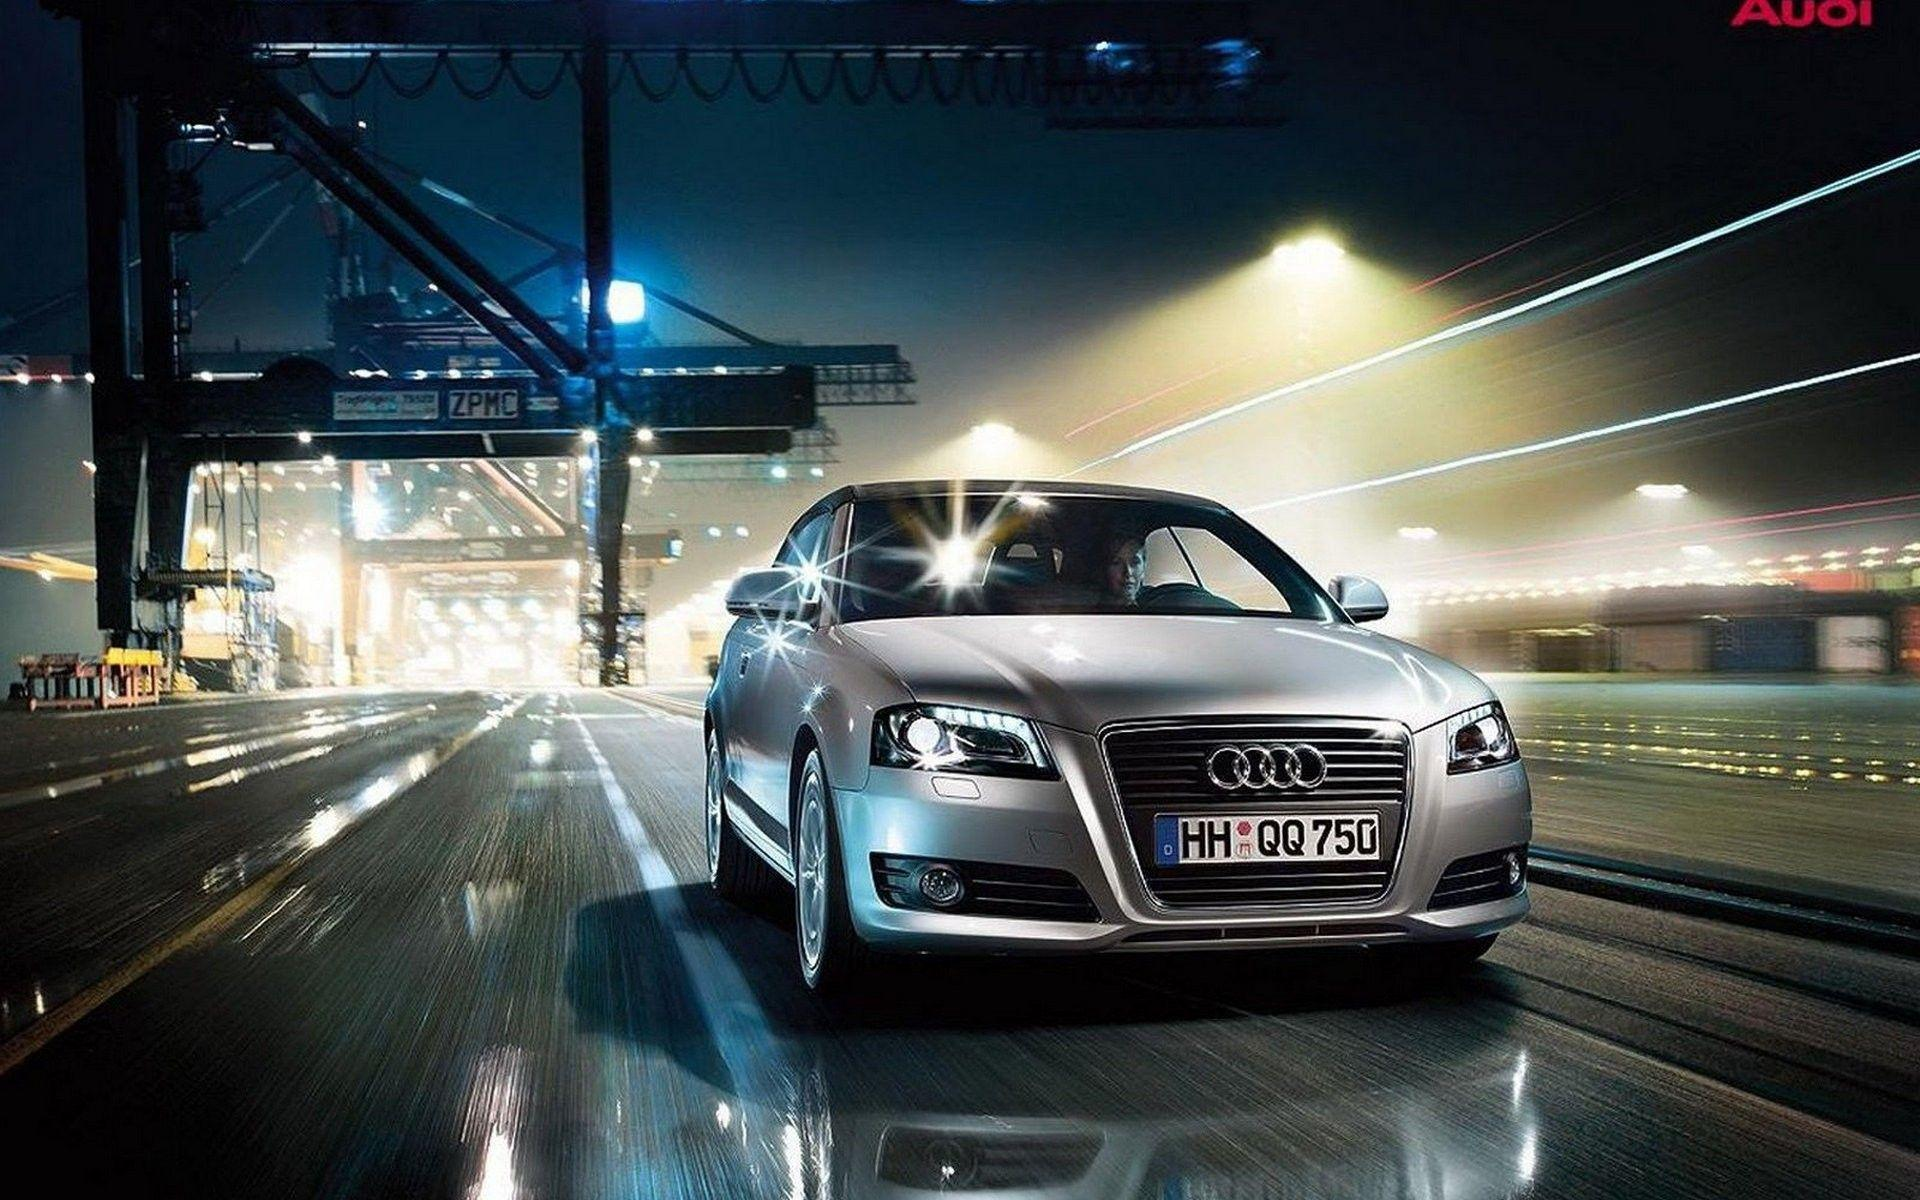 audi a3 wallpaper Group with 70 items